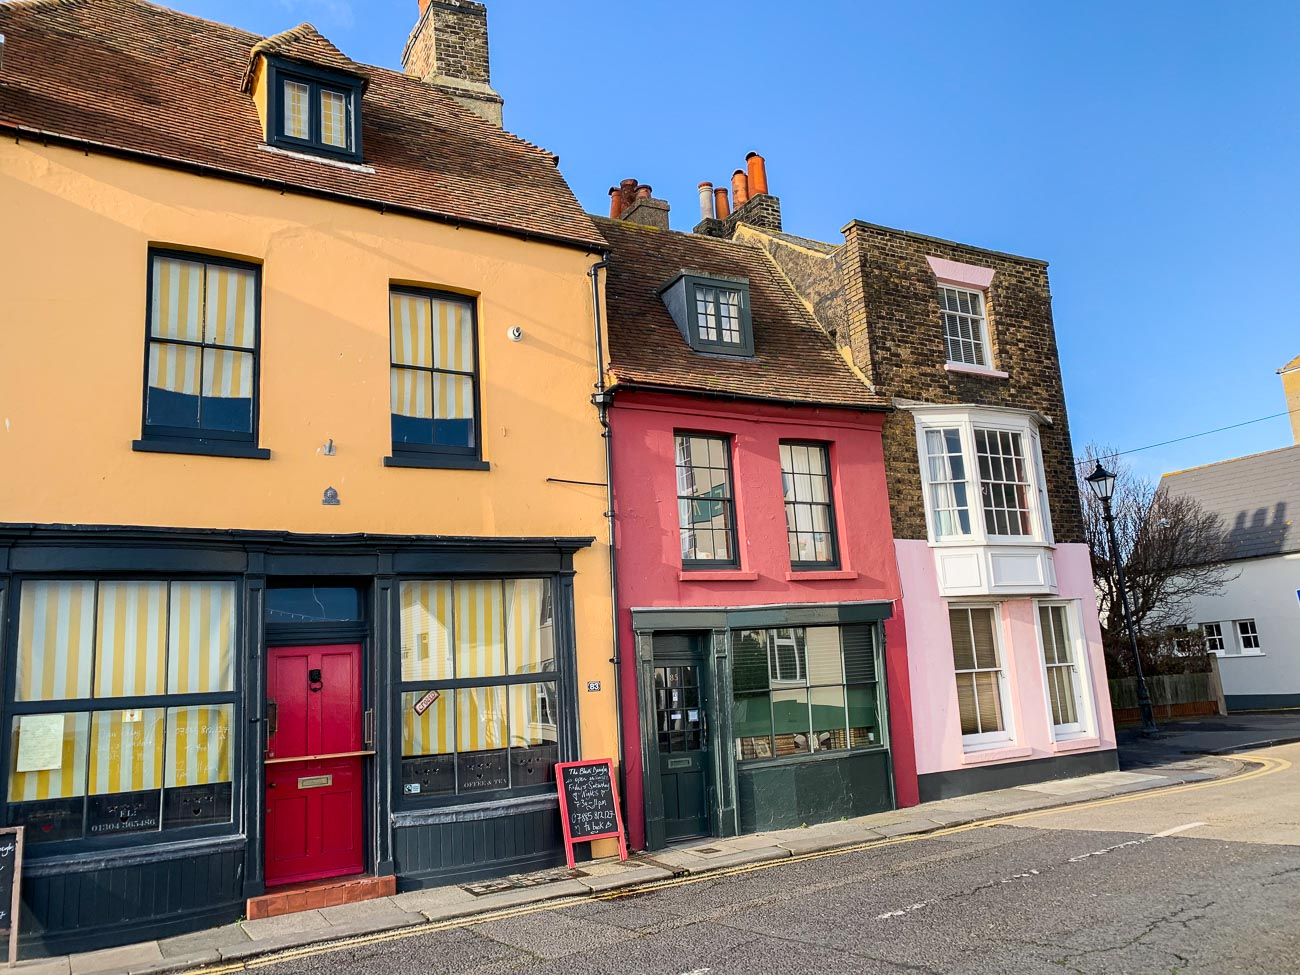 Bright coloured painted shops in Deal, Kent.